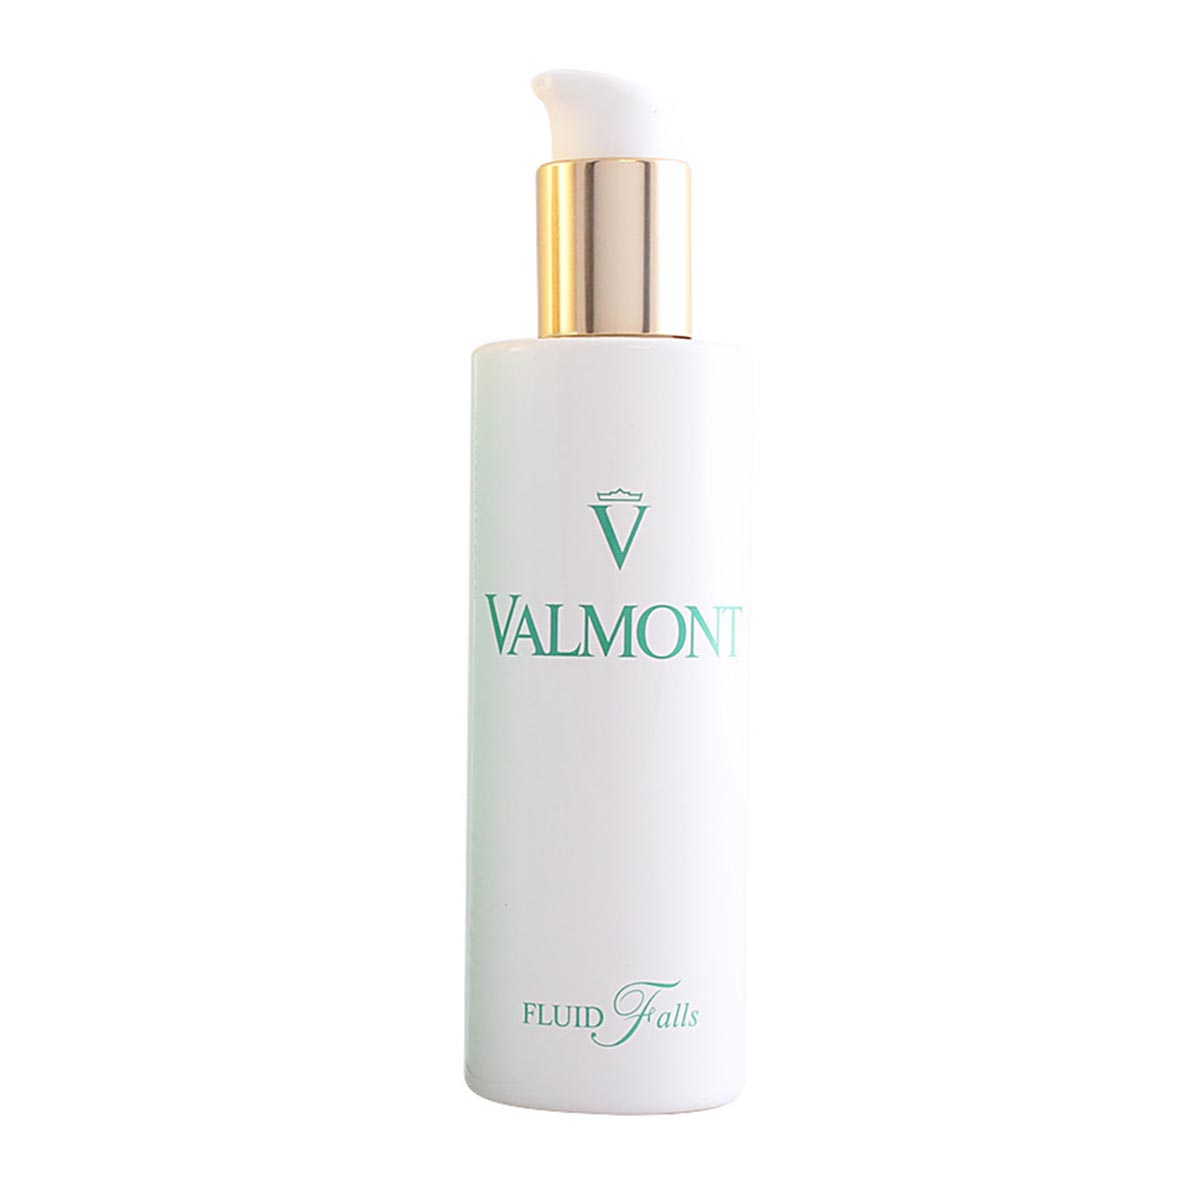 Valmont purity fluid falls 150ml